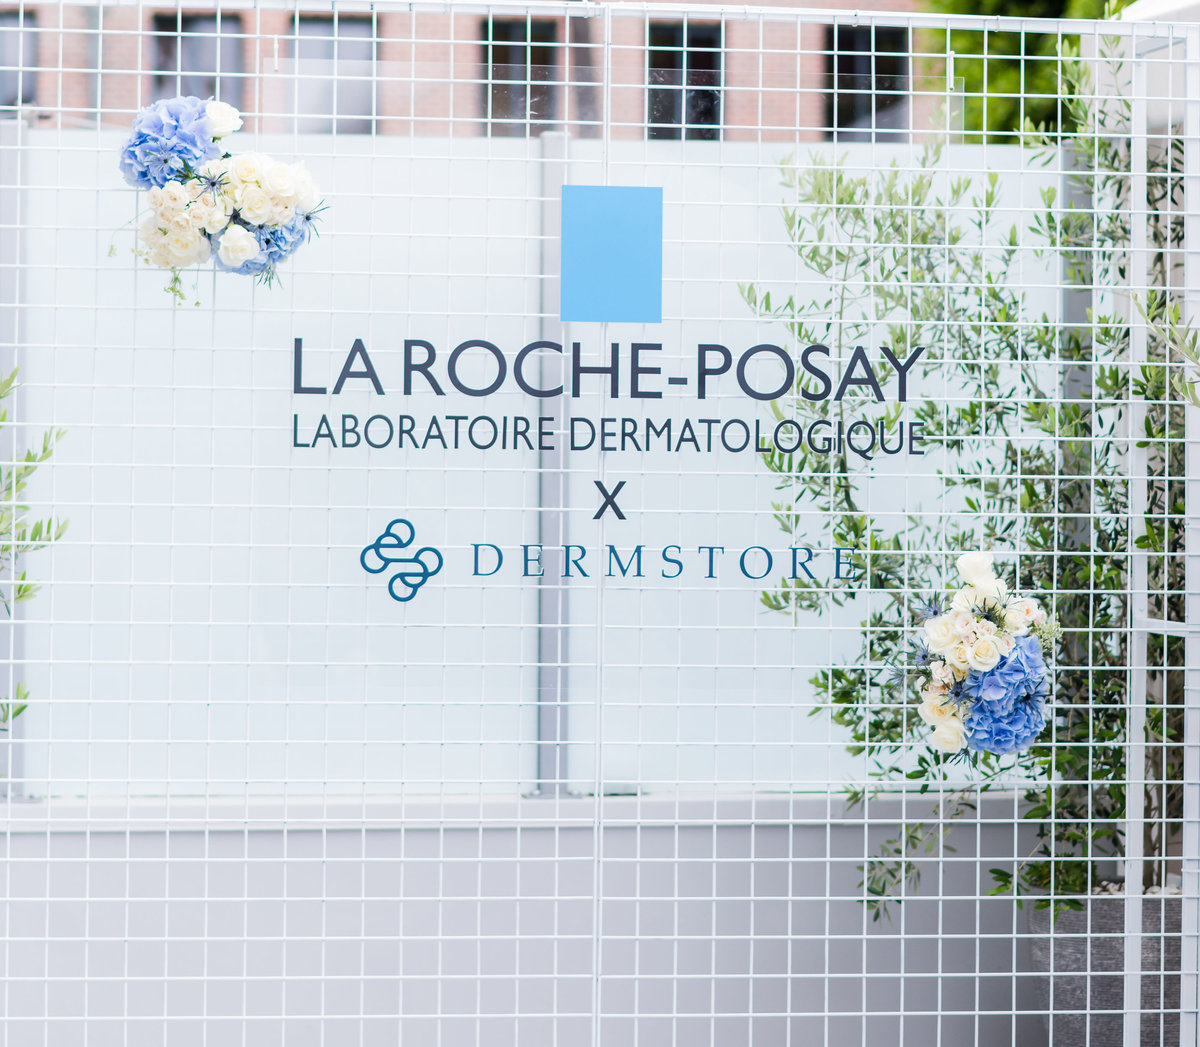 LA-ROCHE-POSAY-LOS-ANGELES-96